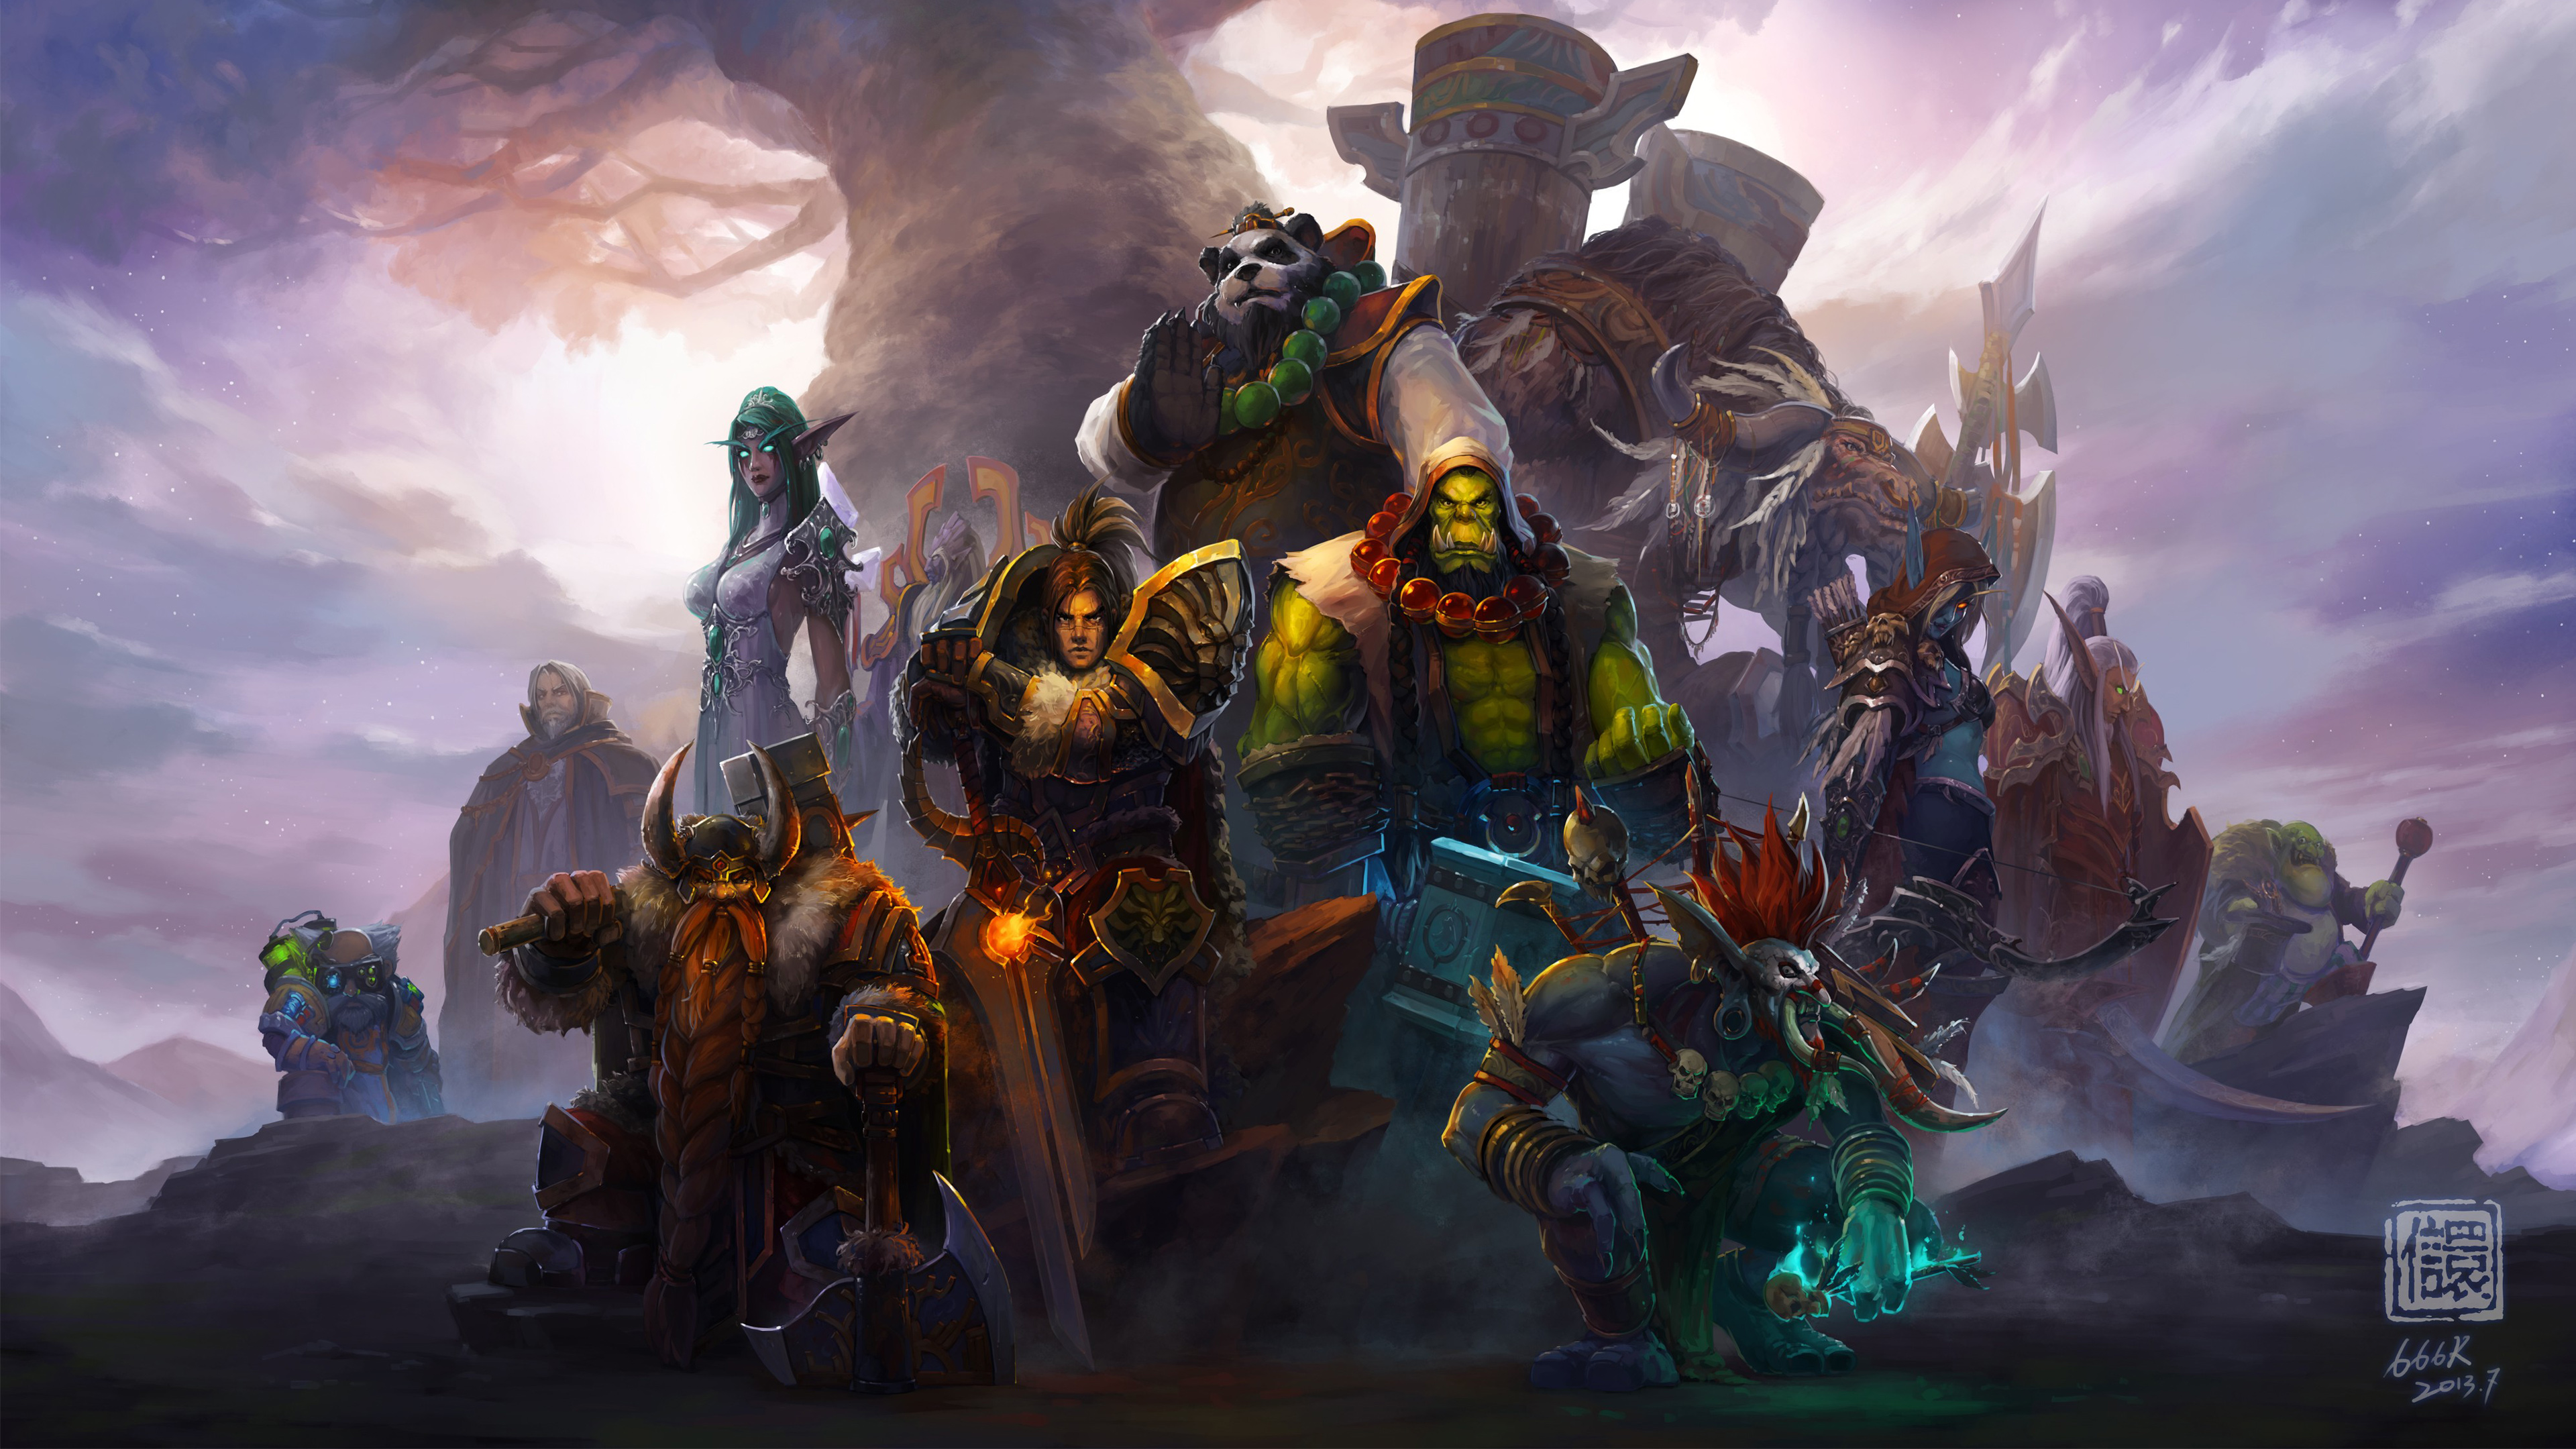 warcraft wallpapers photos and desktop backgrounds up to 8K